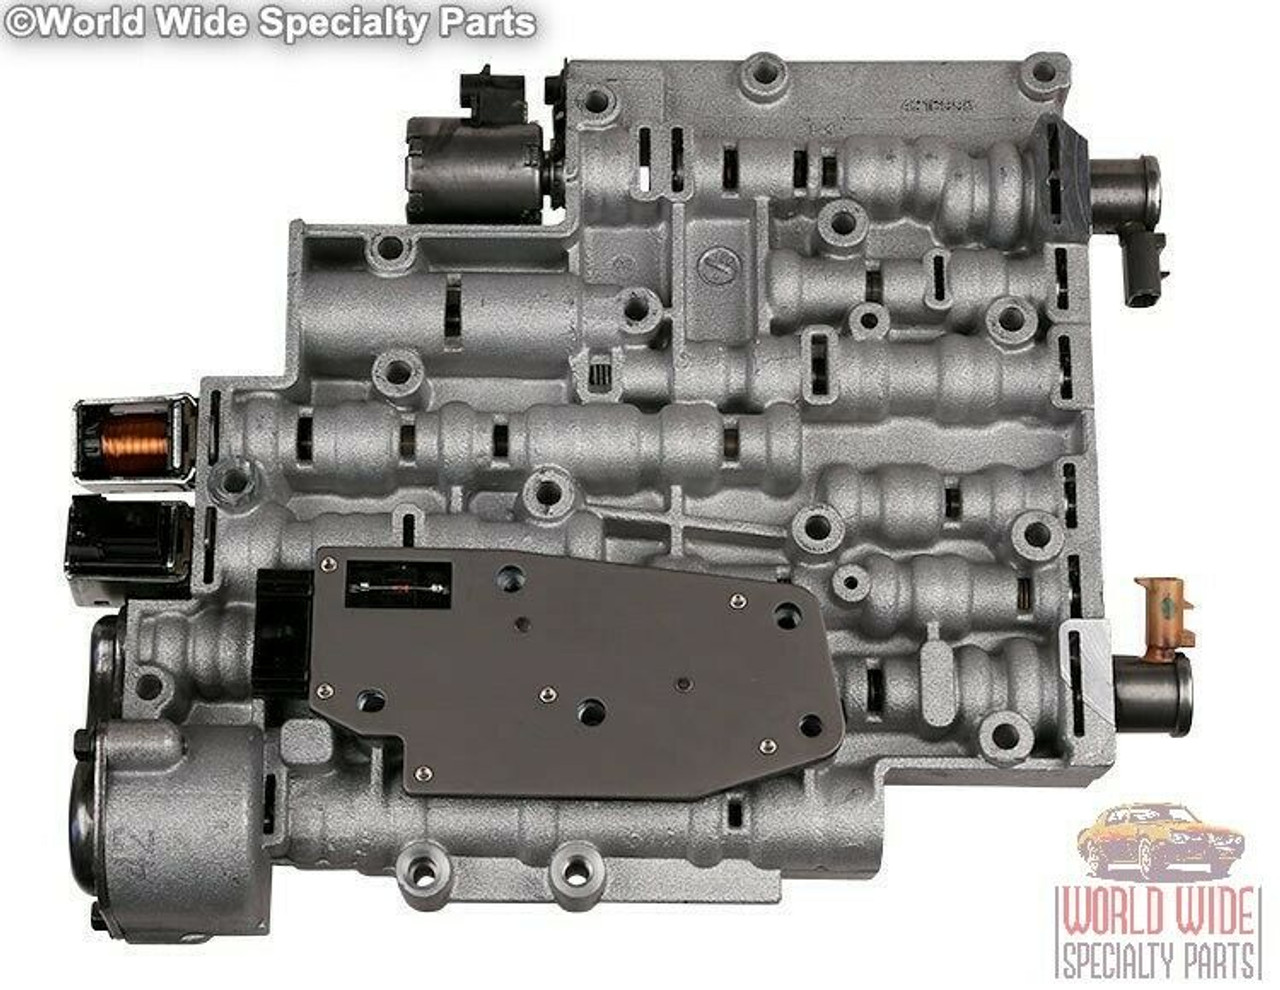 GM 4L60E, 4L65E, 4L70E Valve Body 2003-2008 w/ Transgo 4L60E-HD2 Kit Installed